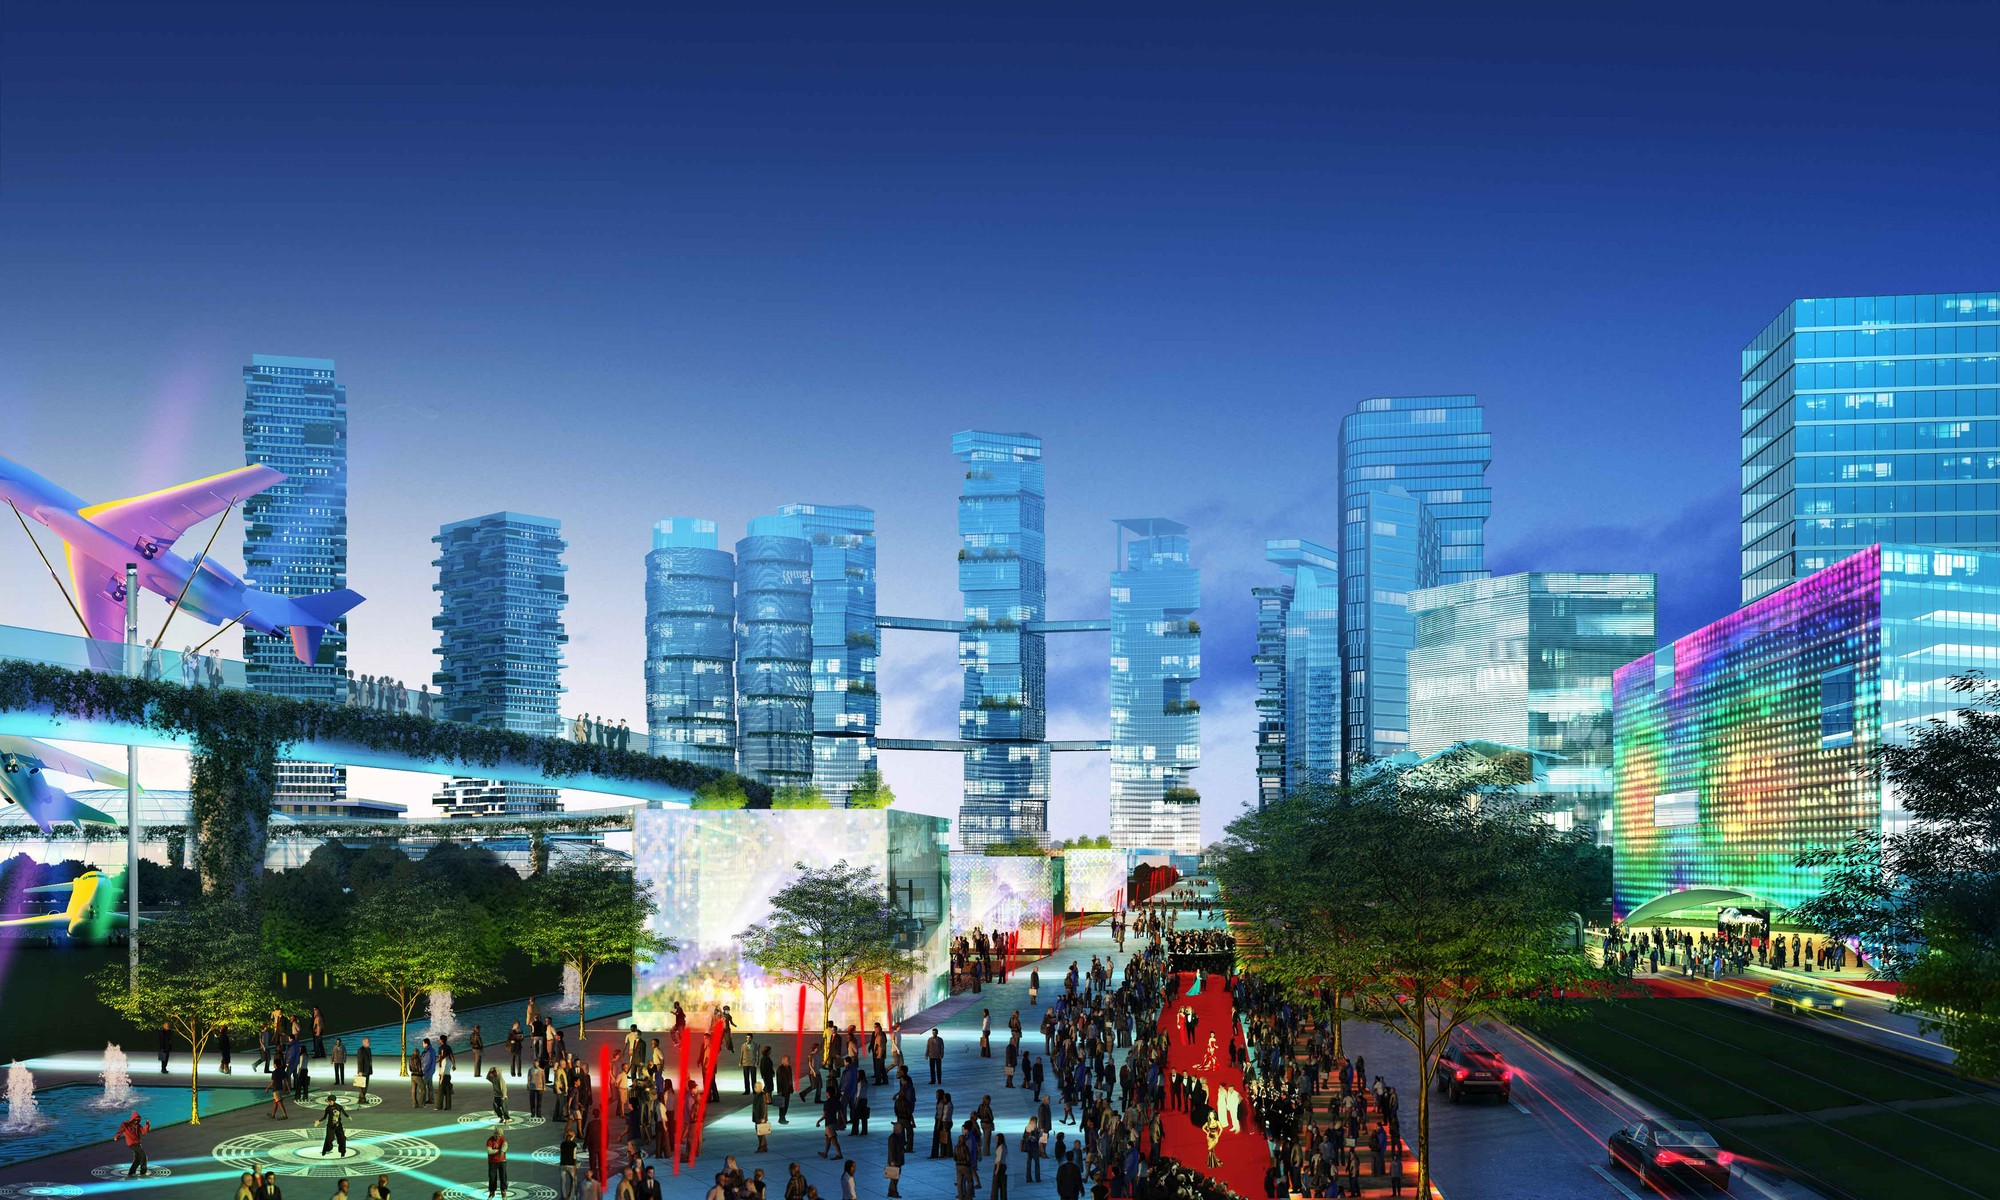 Bandar malaysia masterplan winning proposal broadway for Broadway malyan